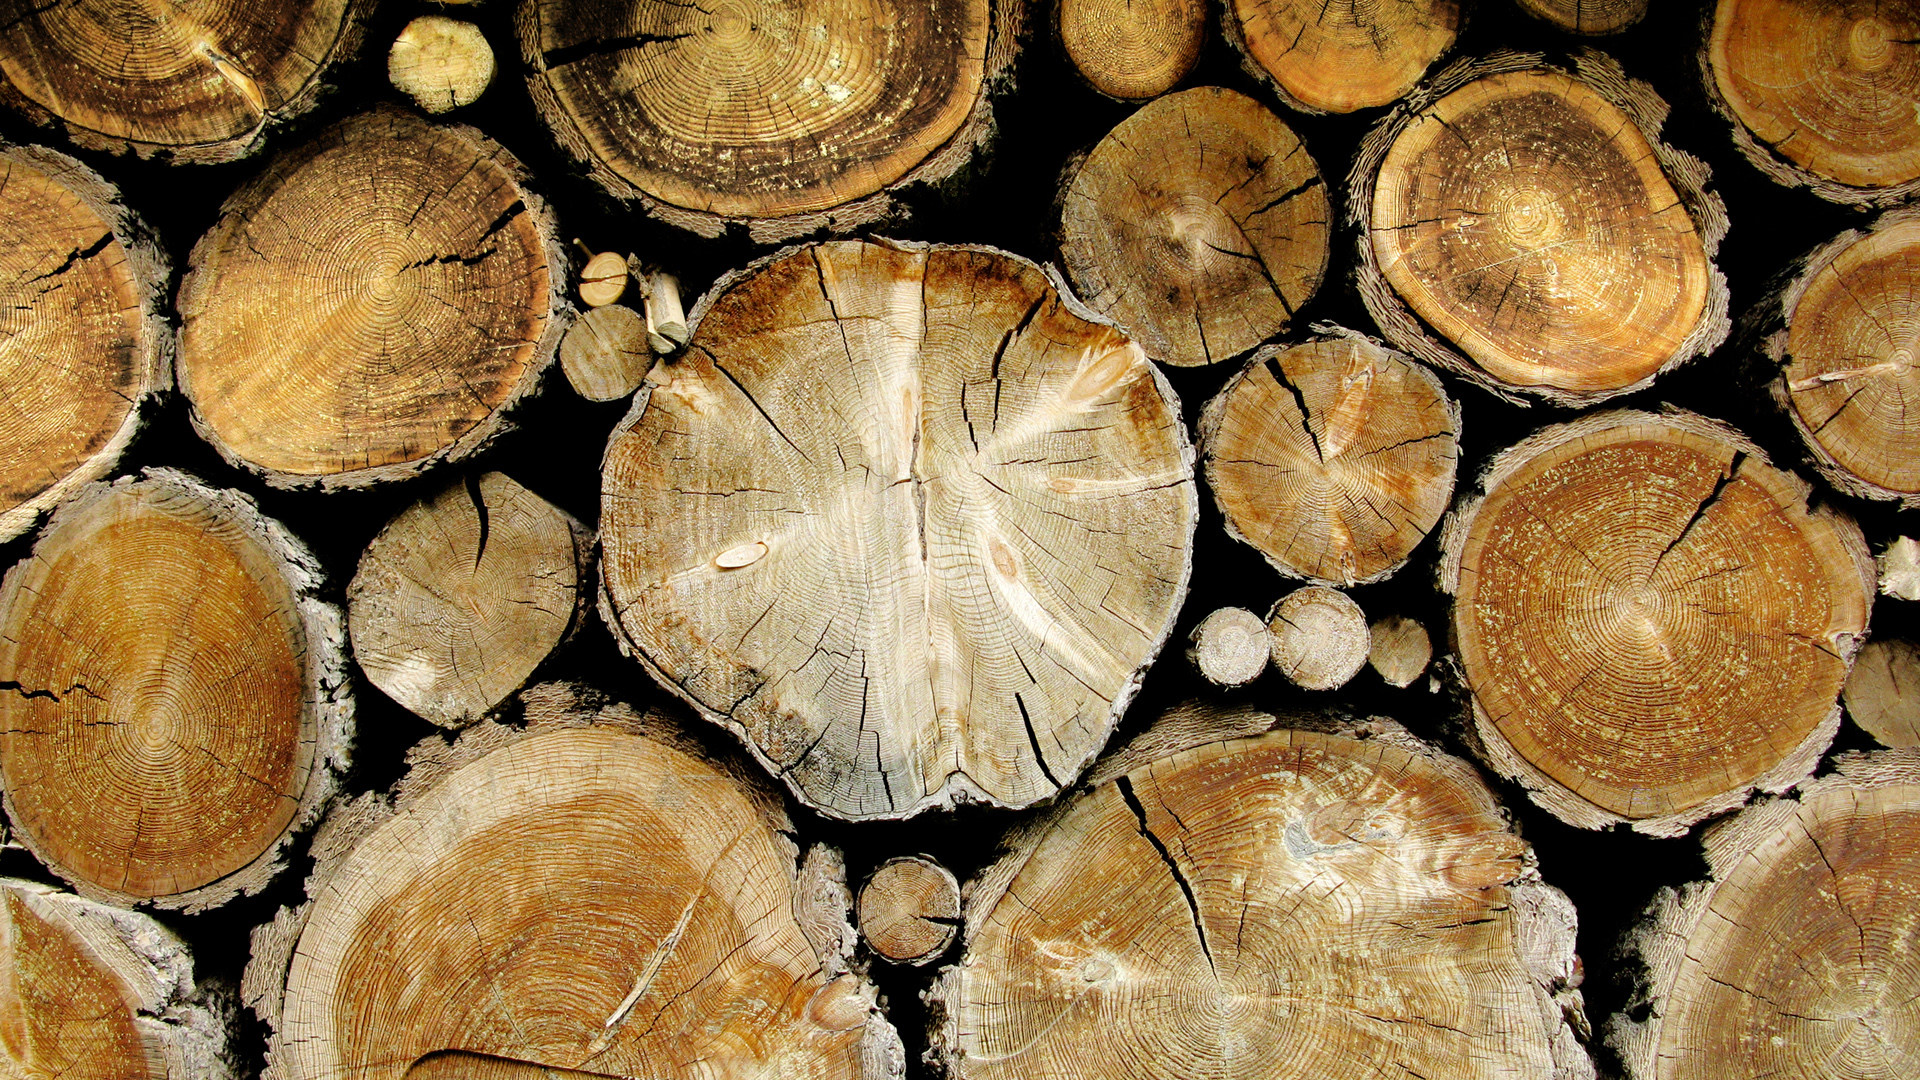 tree_stumps_wood_nature_1920x1080